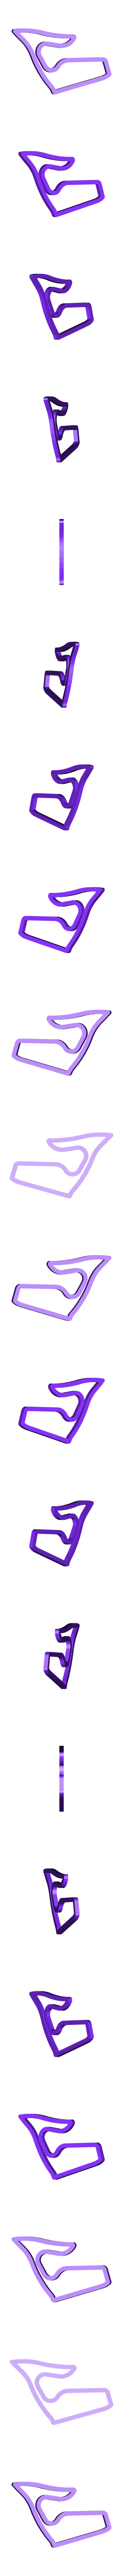 RedBullRing.STL Download free STL file All MotoGP tracks • Object to 3D print, Guillaume_975